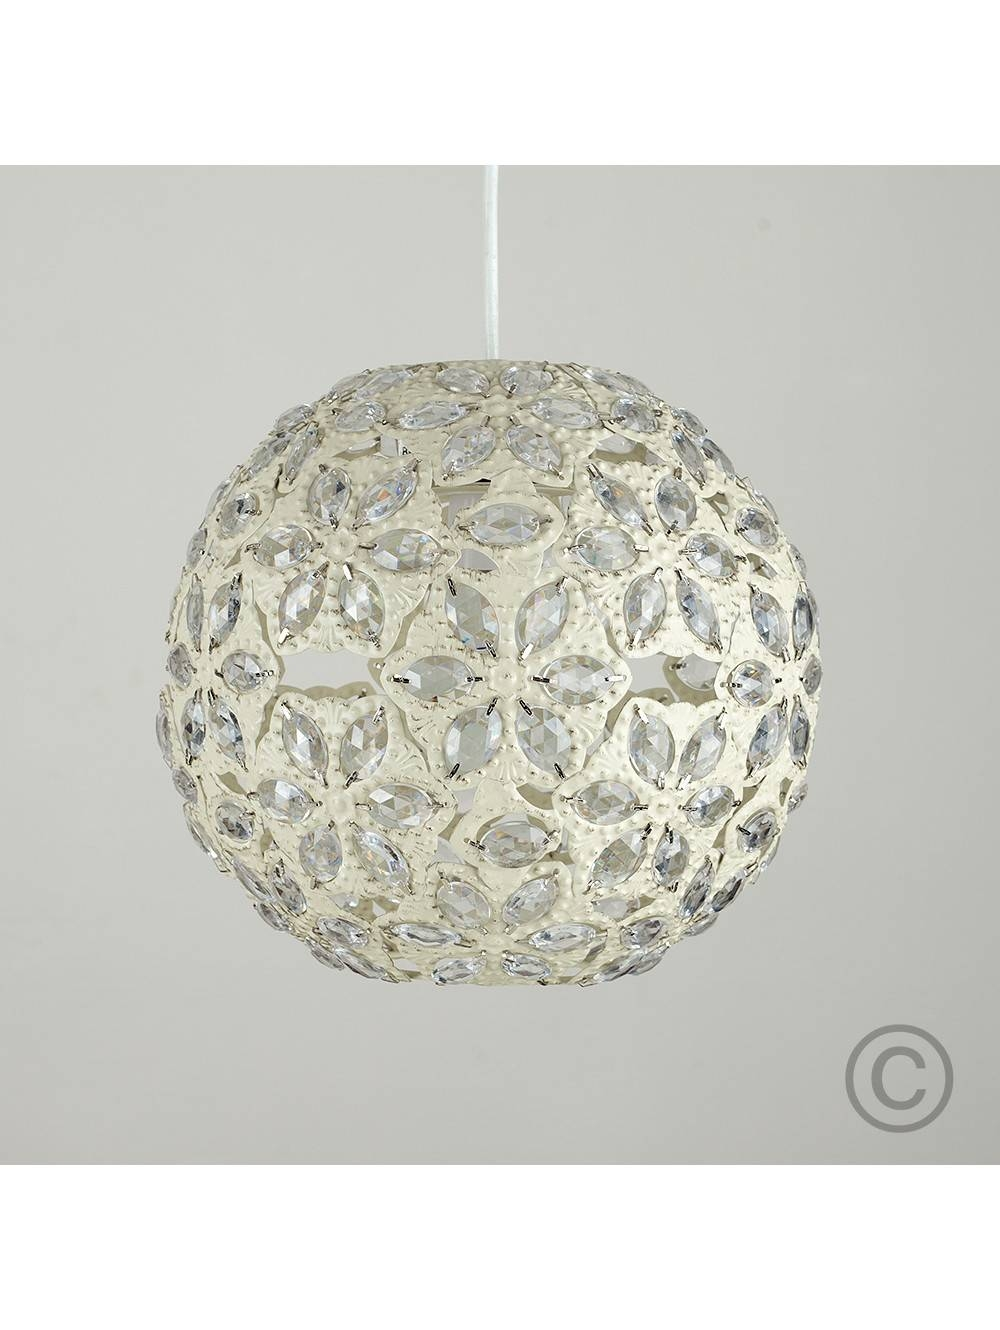 17 Best Images About Lighting On Pinterest | 1960S, Olafur pertaining to Moroccan Style Lights Shades (Image 1 of 15)